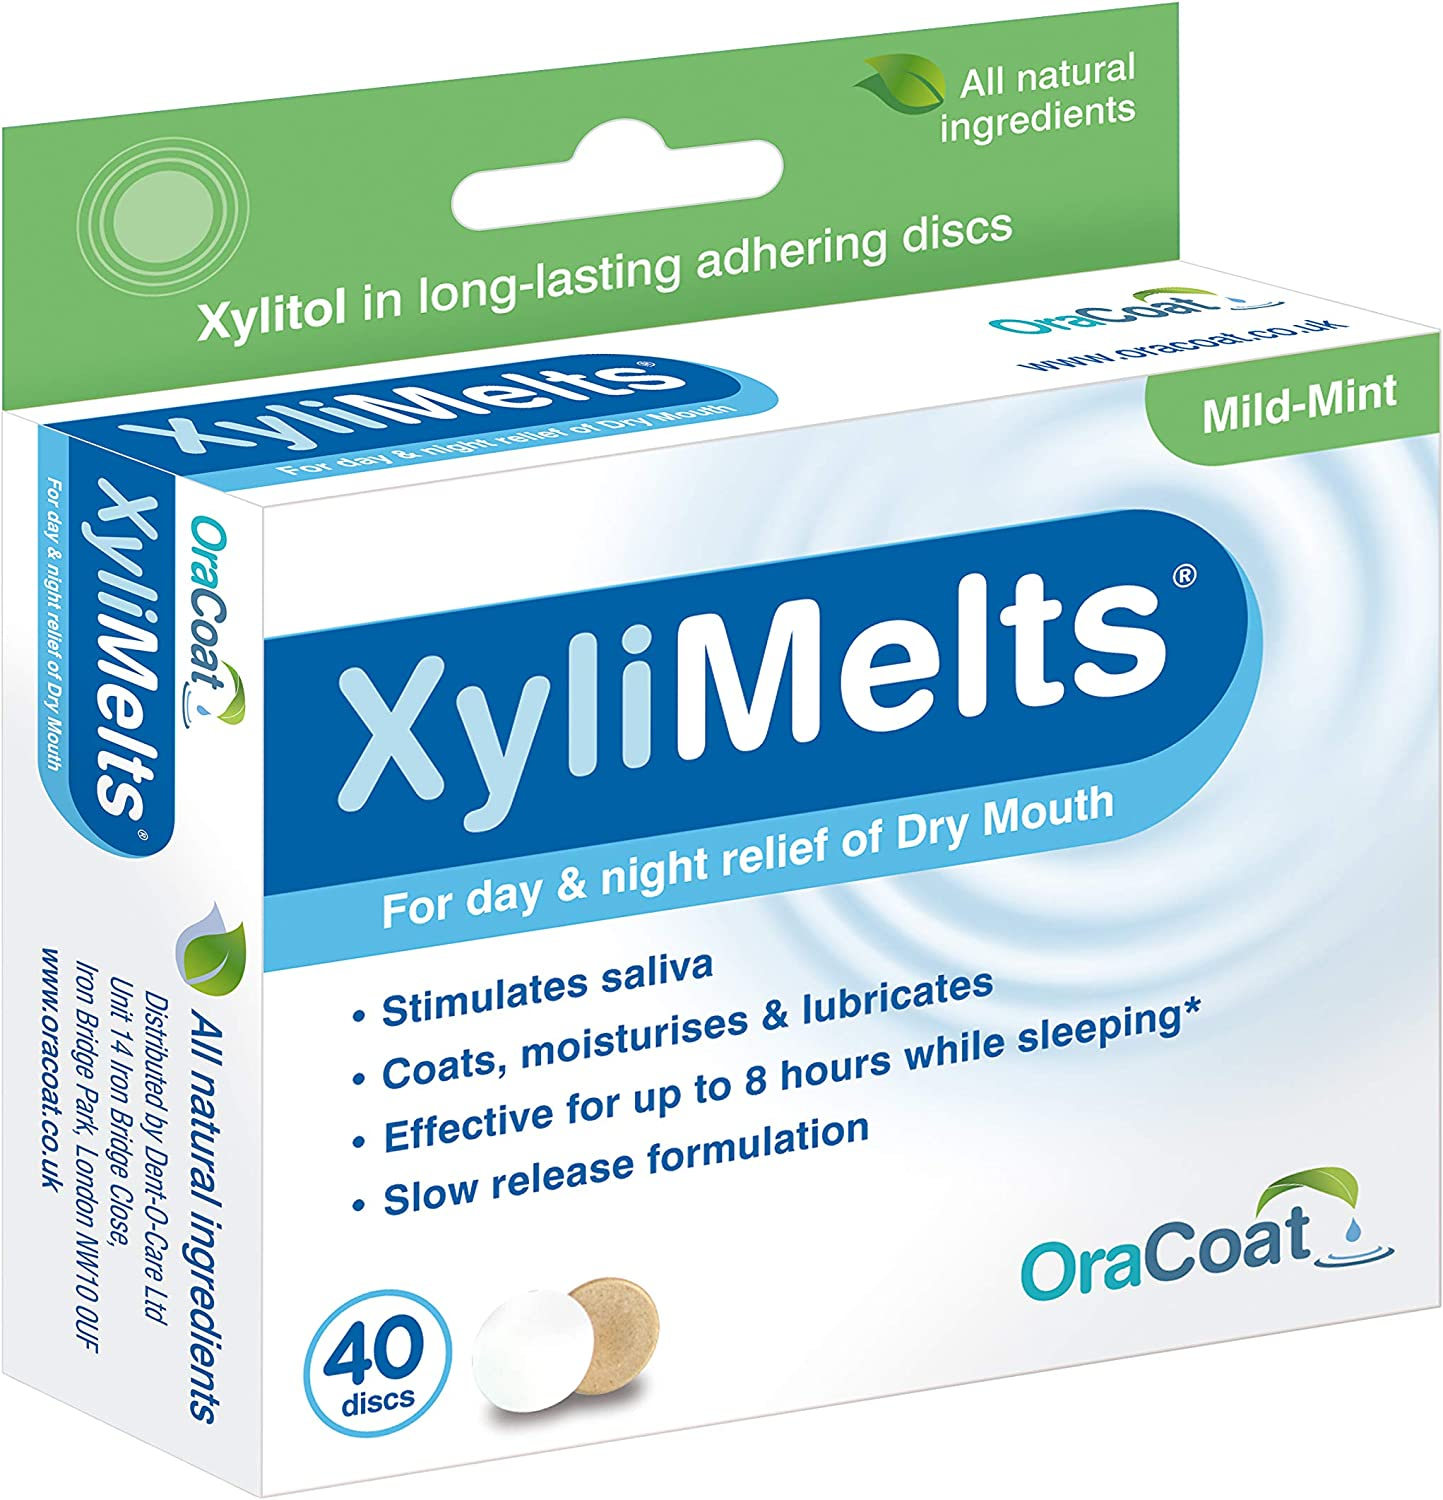 can i have xylimelts on keto diet